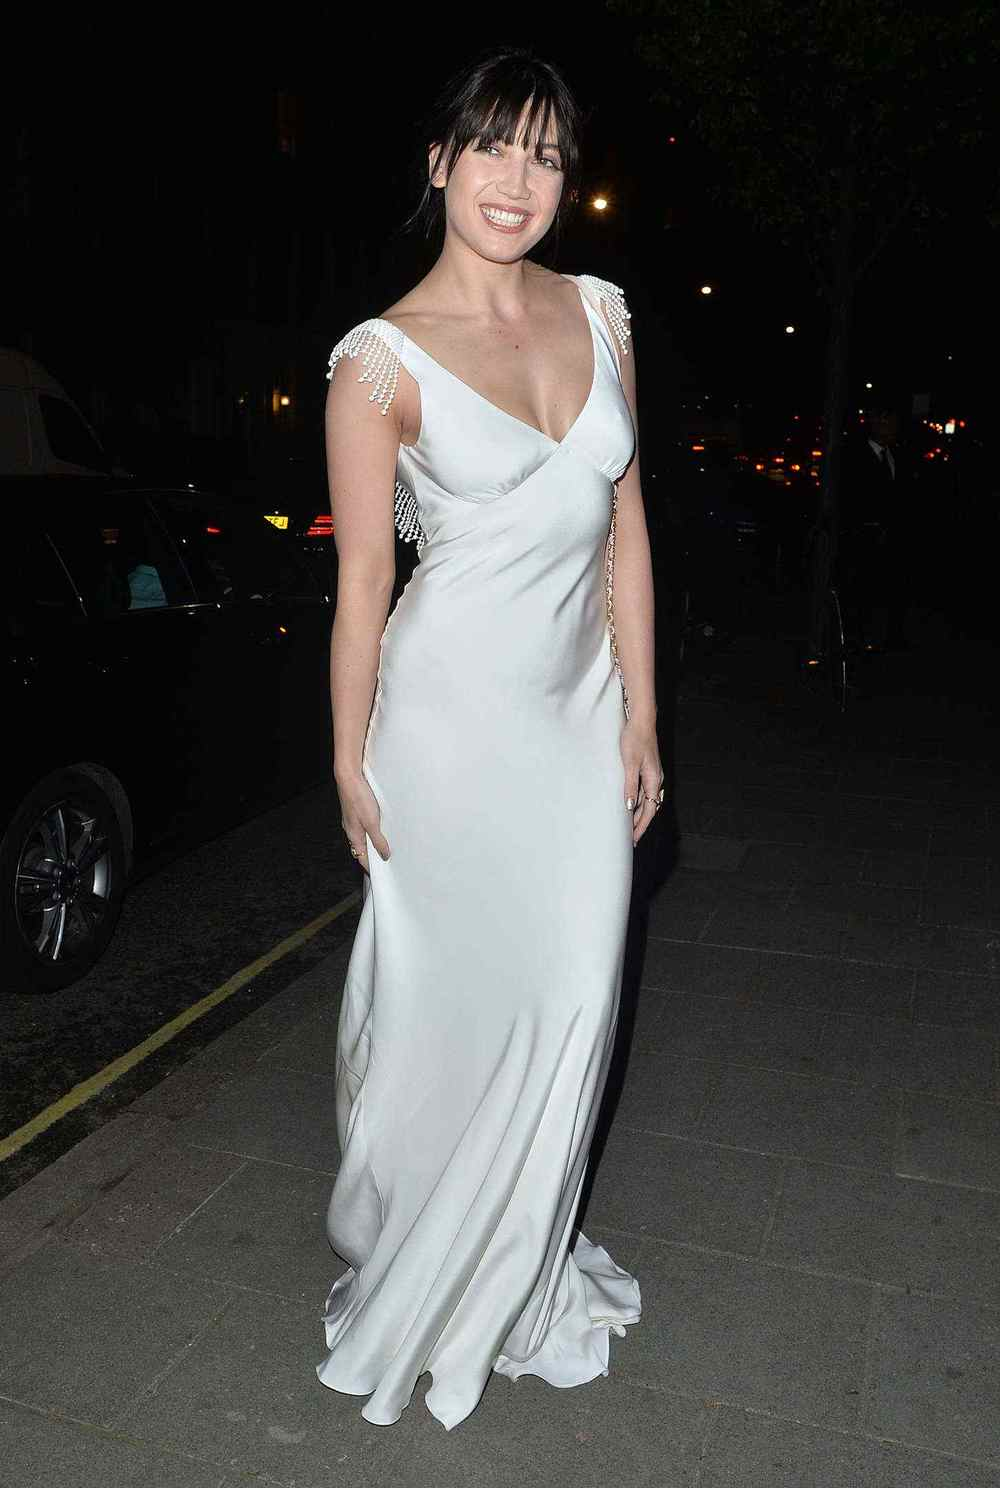 Daisy Lowe wears the silk crepe bias cut Vera wedding dress with French knot detail and plunging low back by Halfpenny London